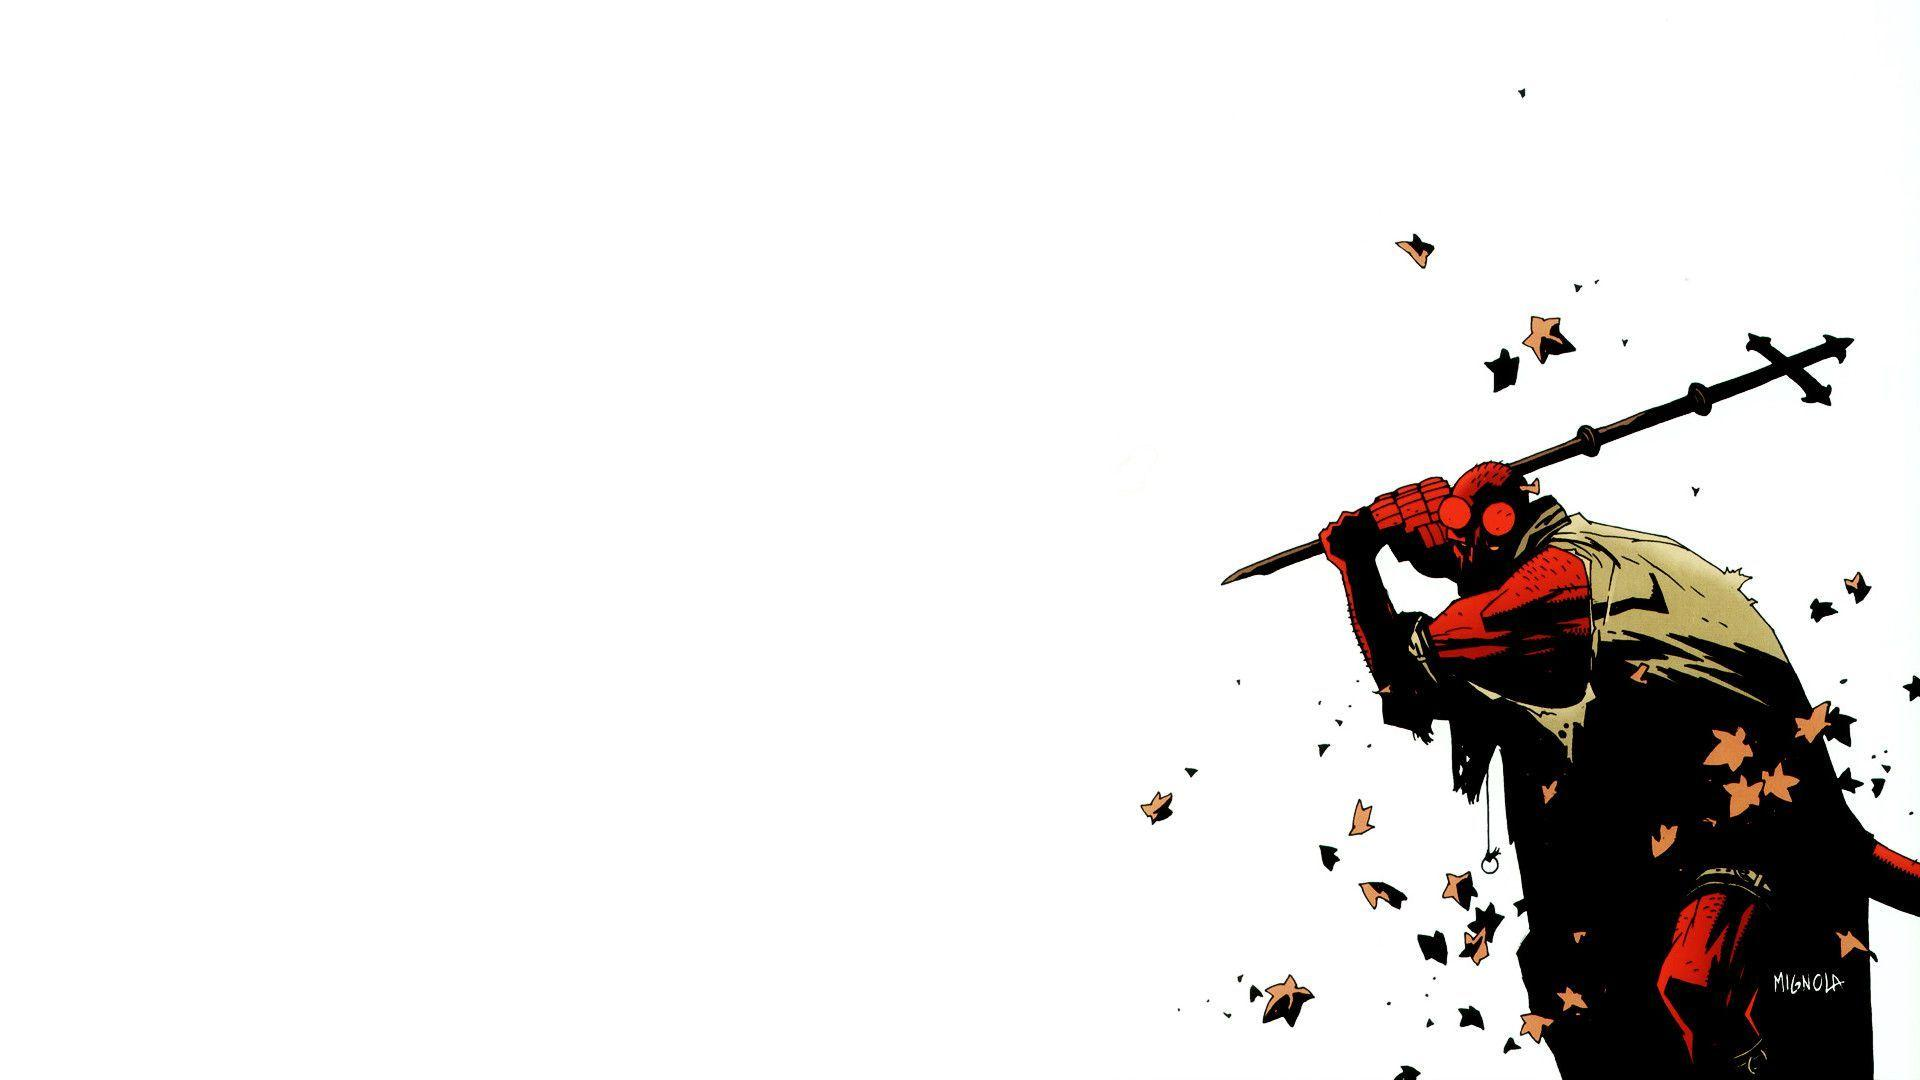 Free Cross Weapon Hellboy Wallpapers, Free Cross Weapon Hellboy HD ...